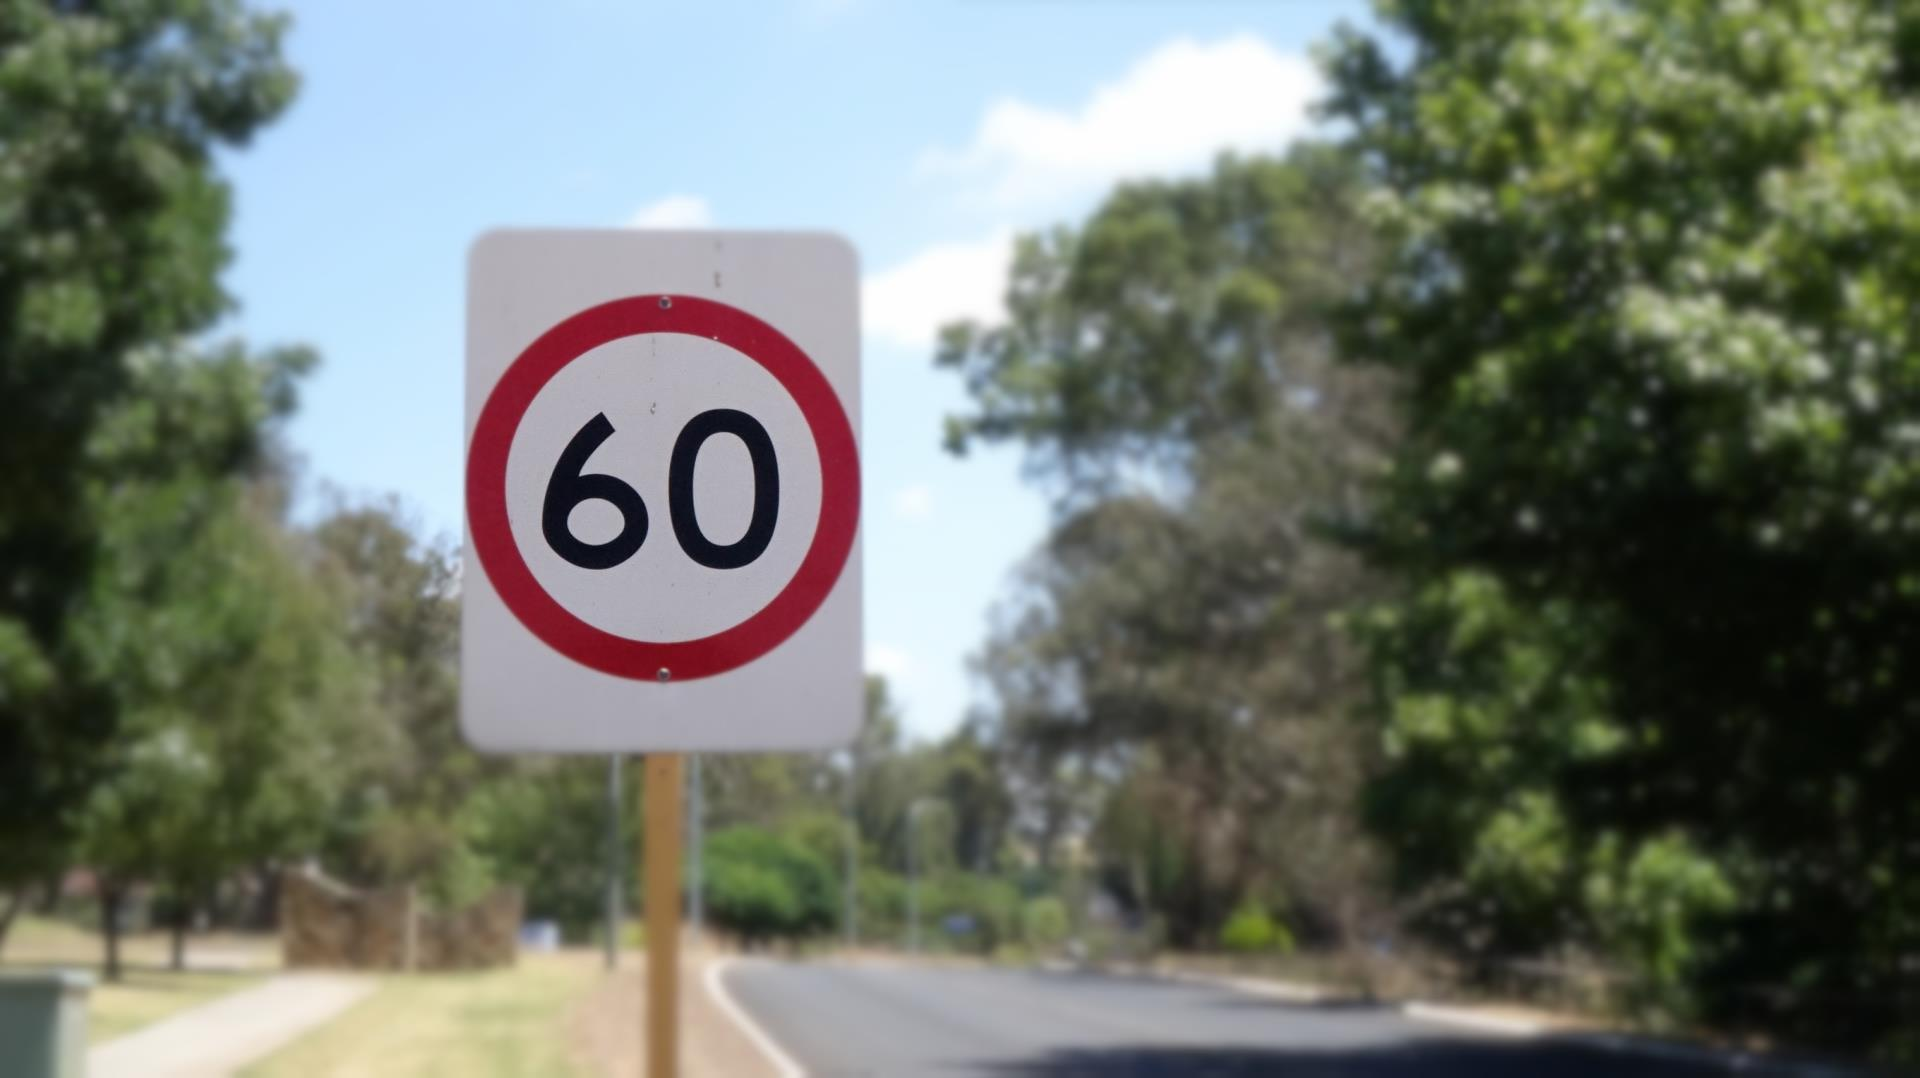 Request for Review of Open Speed Limit on Greenbushes-Grimwade Road